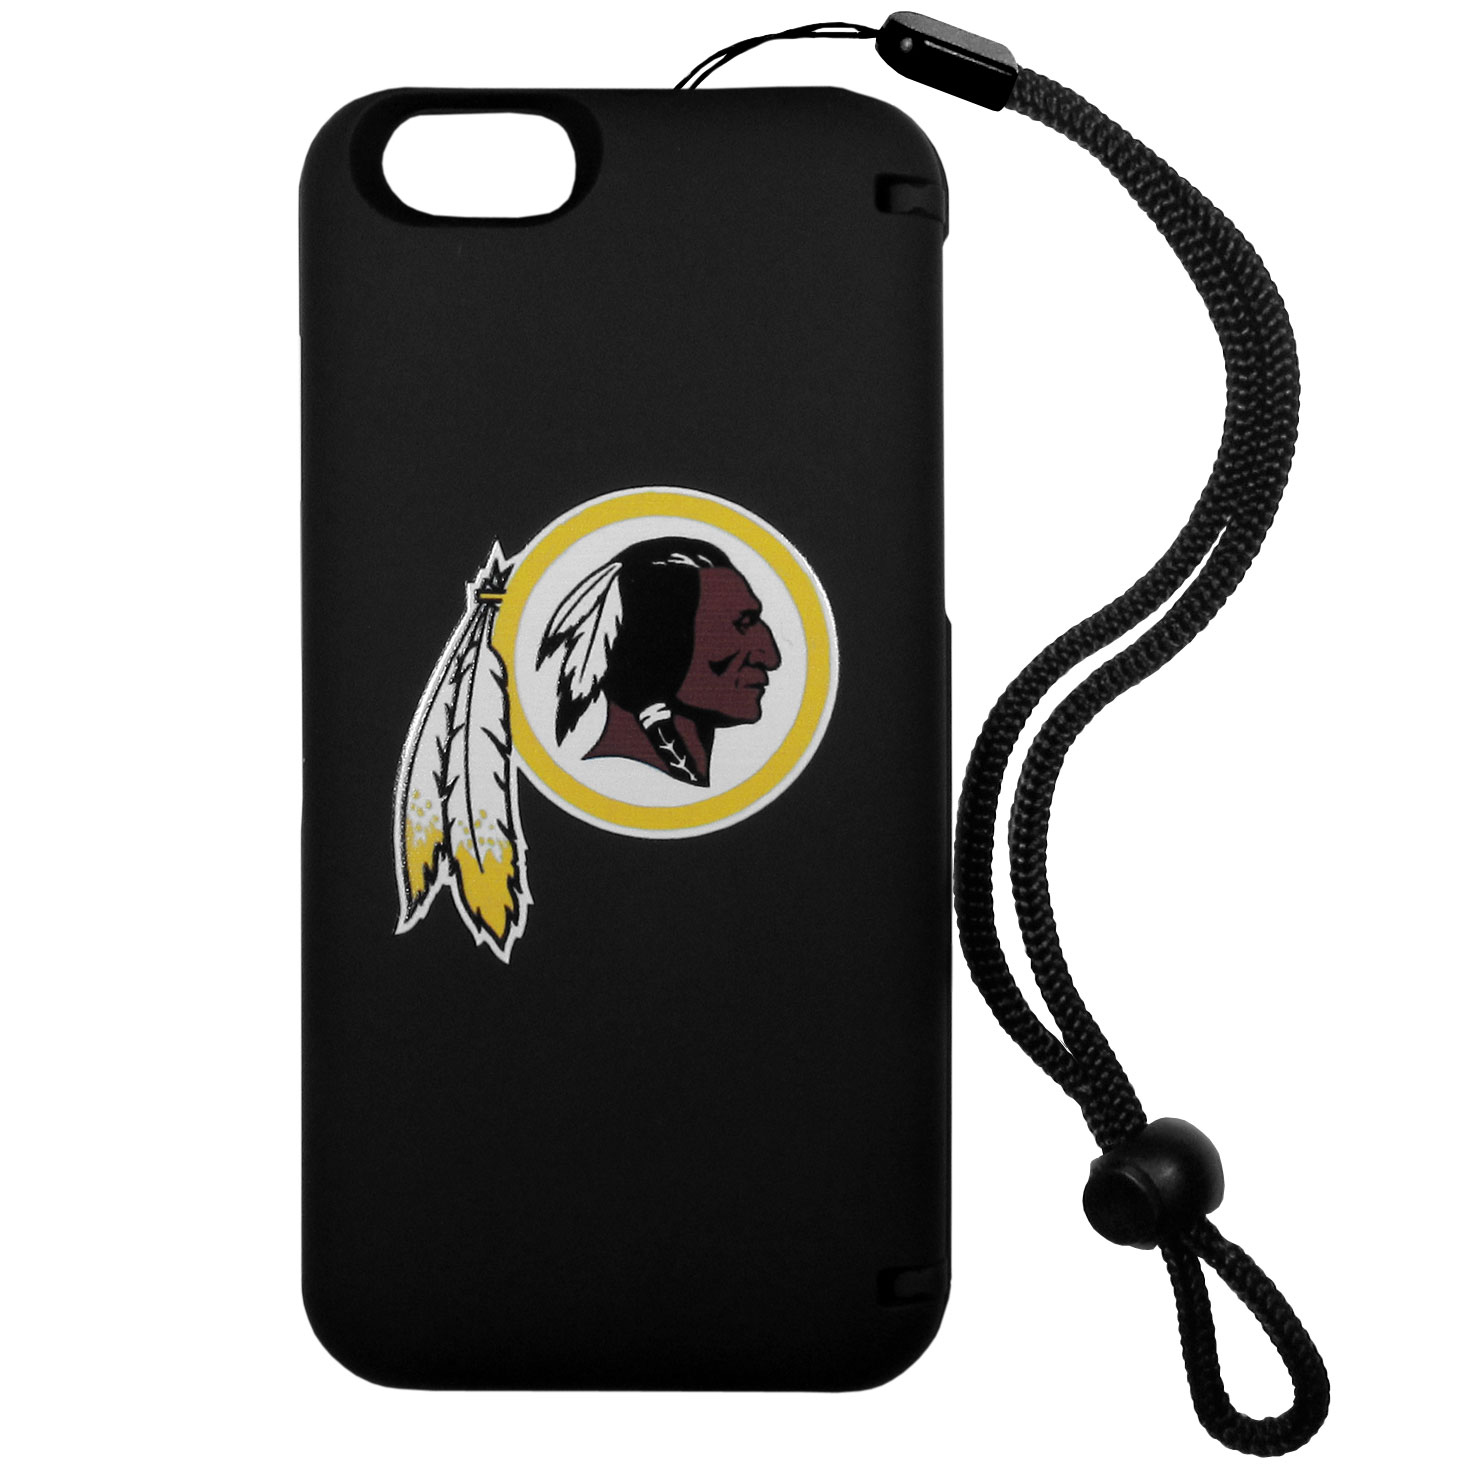 Washington Redskins iPhone 6 Plus Everything Case - This case really does have everything but the kitchen sink! The hidden compartment lets you keep your cards, money and tickets to the big game safe and secure and has a compact mirror so you can make sure your game face is ready to go. It also comes with a kickstand to make chatting and watching videos a breeze. The wrist strap allows you to travel with ease with your everything case. If that's not enough, it also comes with the Washington Redskins logo printed in expert detail on the front.